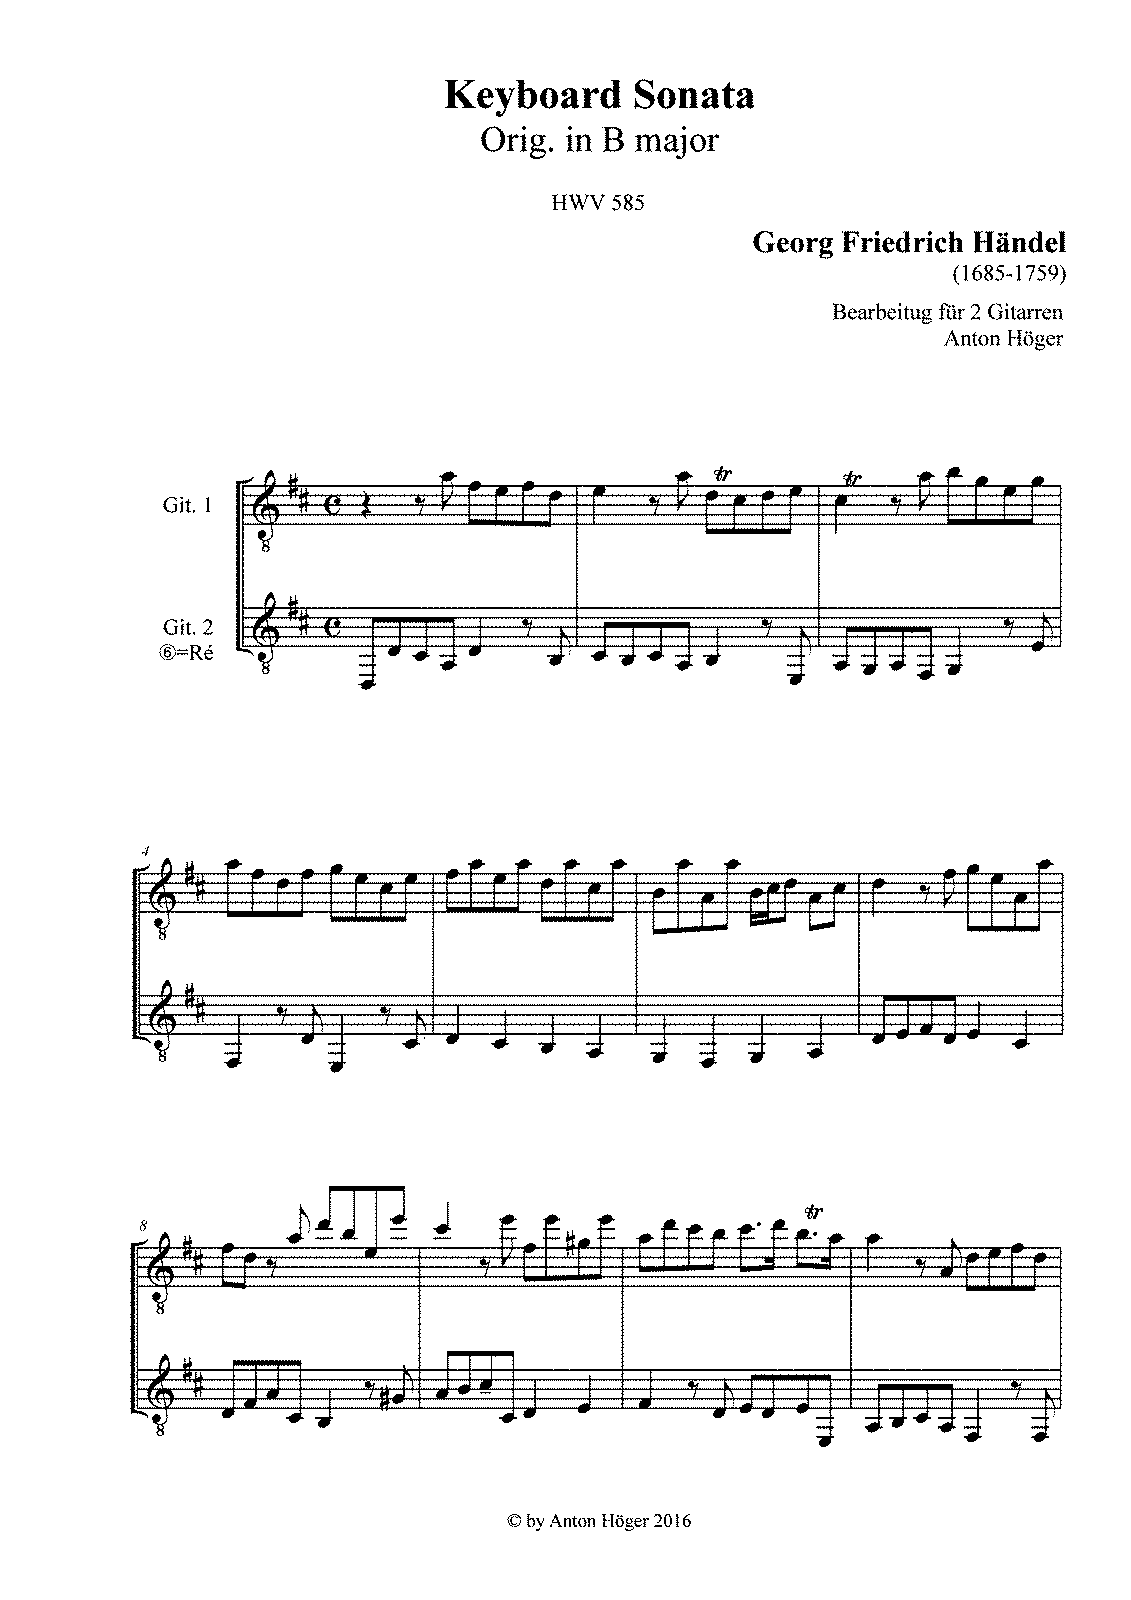 PMLP481322-Händel, Georg Friedrich - Keyboard Sonatina in B-flat major, HWV 585 (D)-2Git.pdf